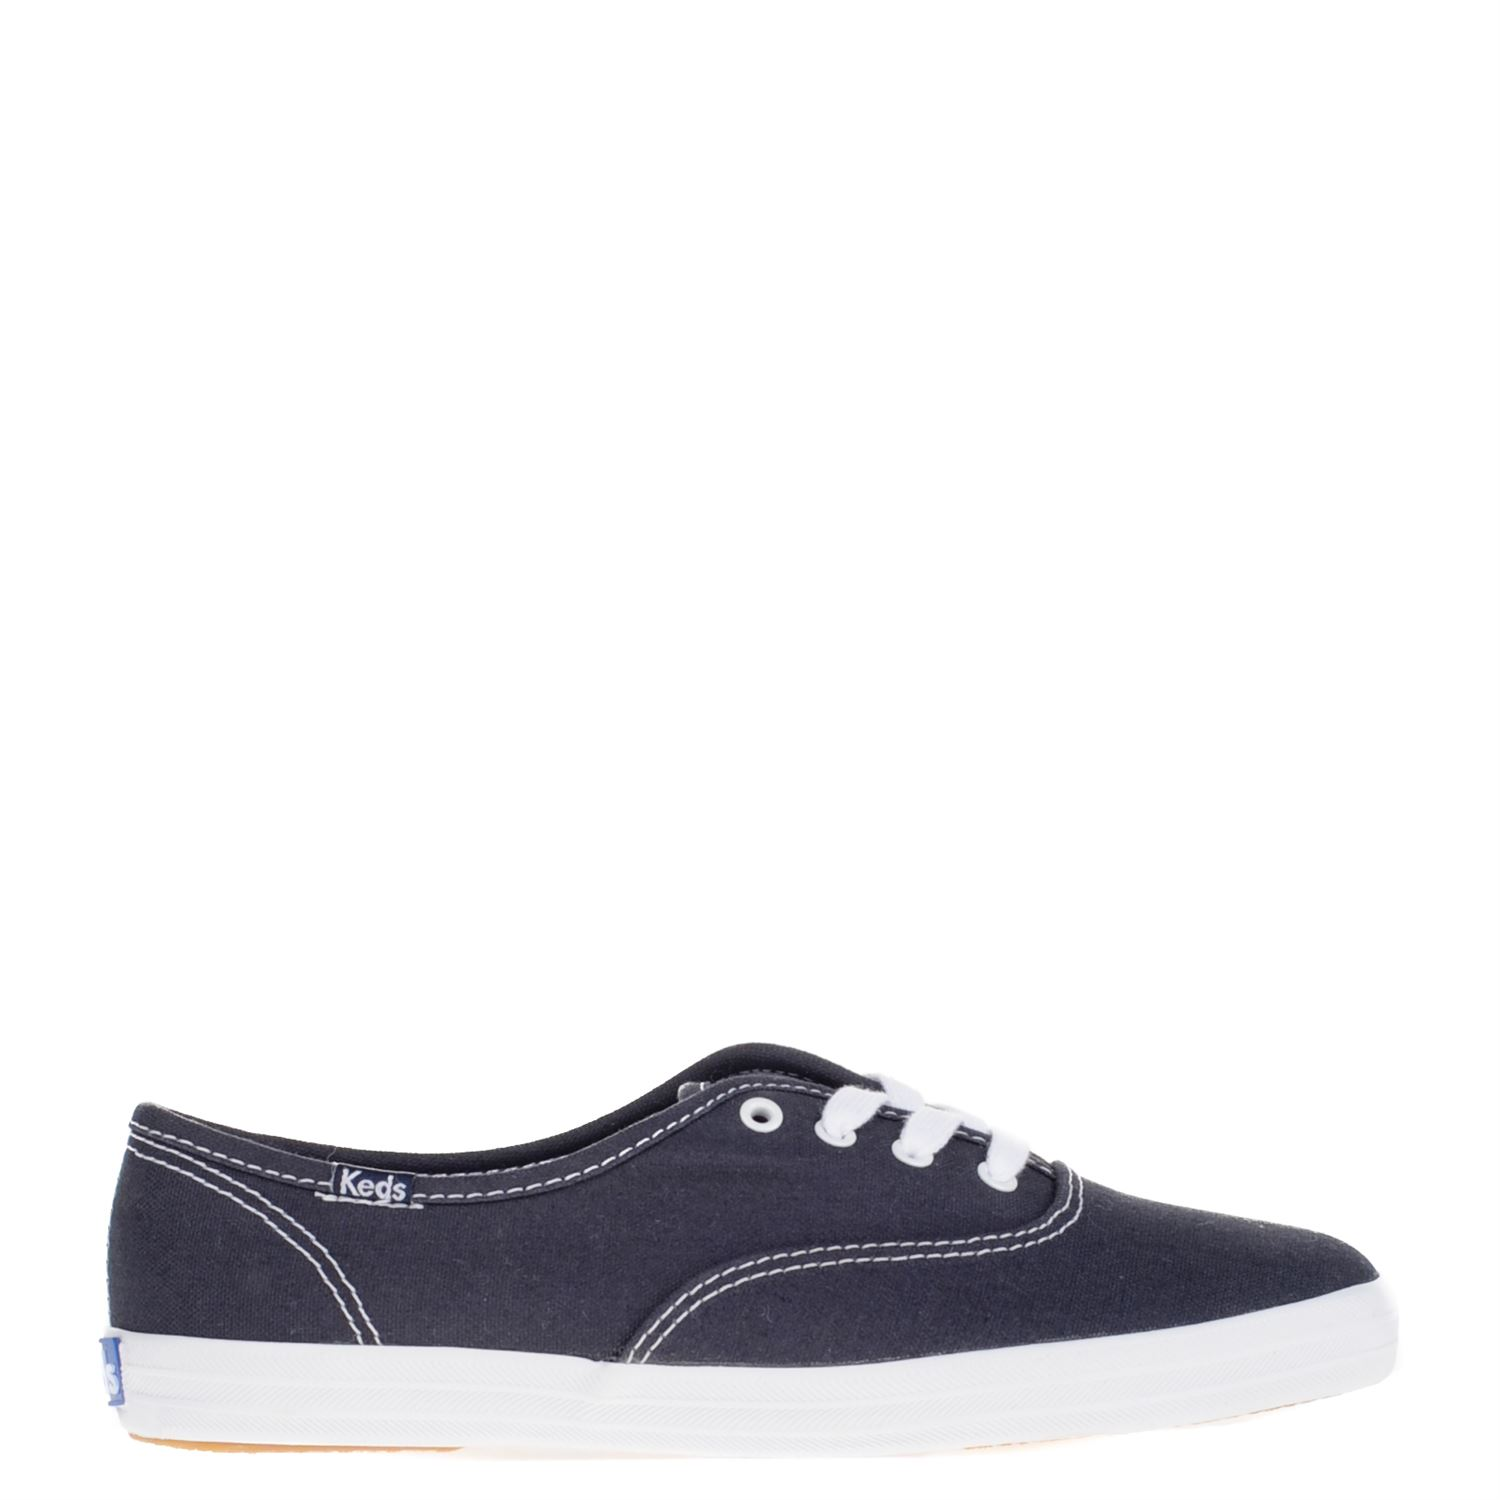 Lage Keds Lage Sneakers Keds Keds Sneakers Dames Blauw Dames Blauw Lage Dames A5wfqIw